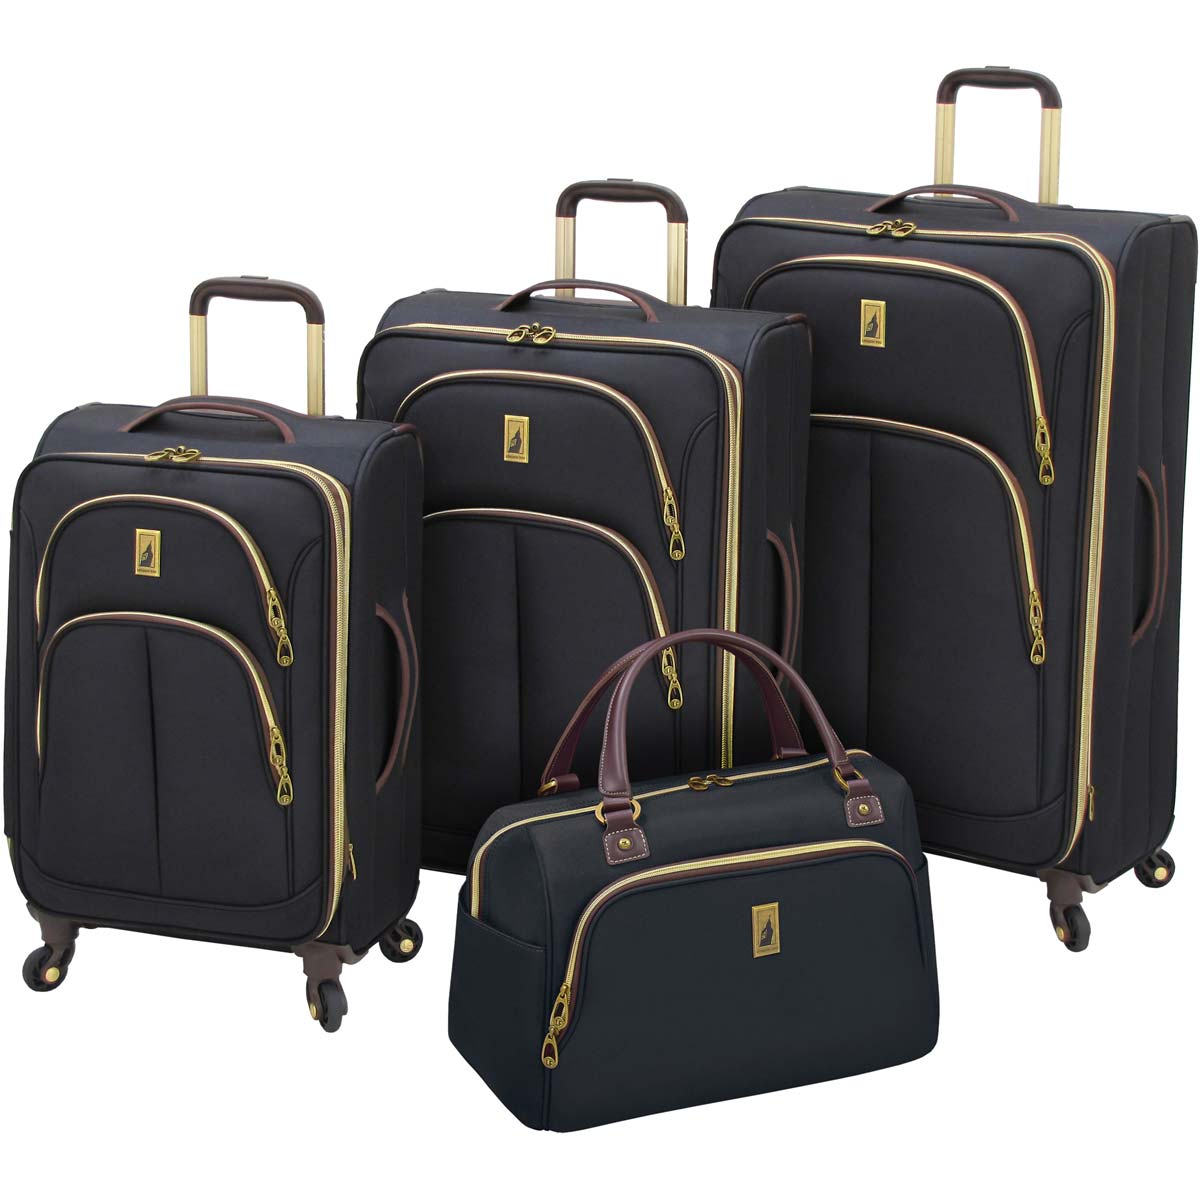 London Fog Coventry 4 Piece Luggage Set